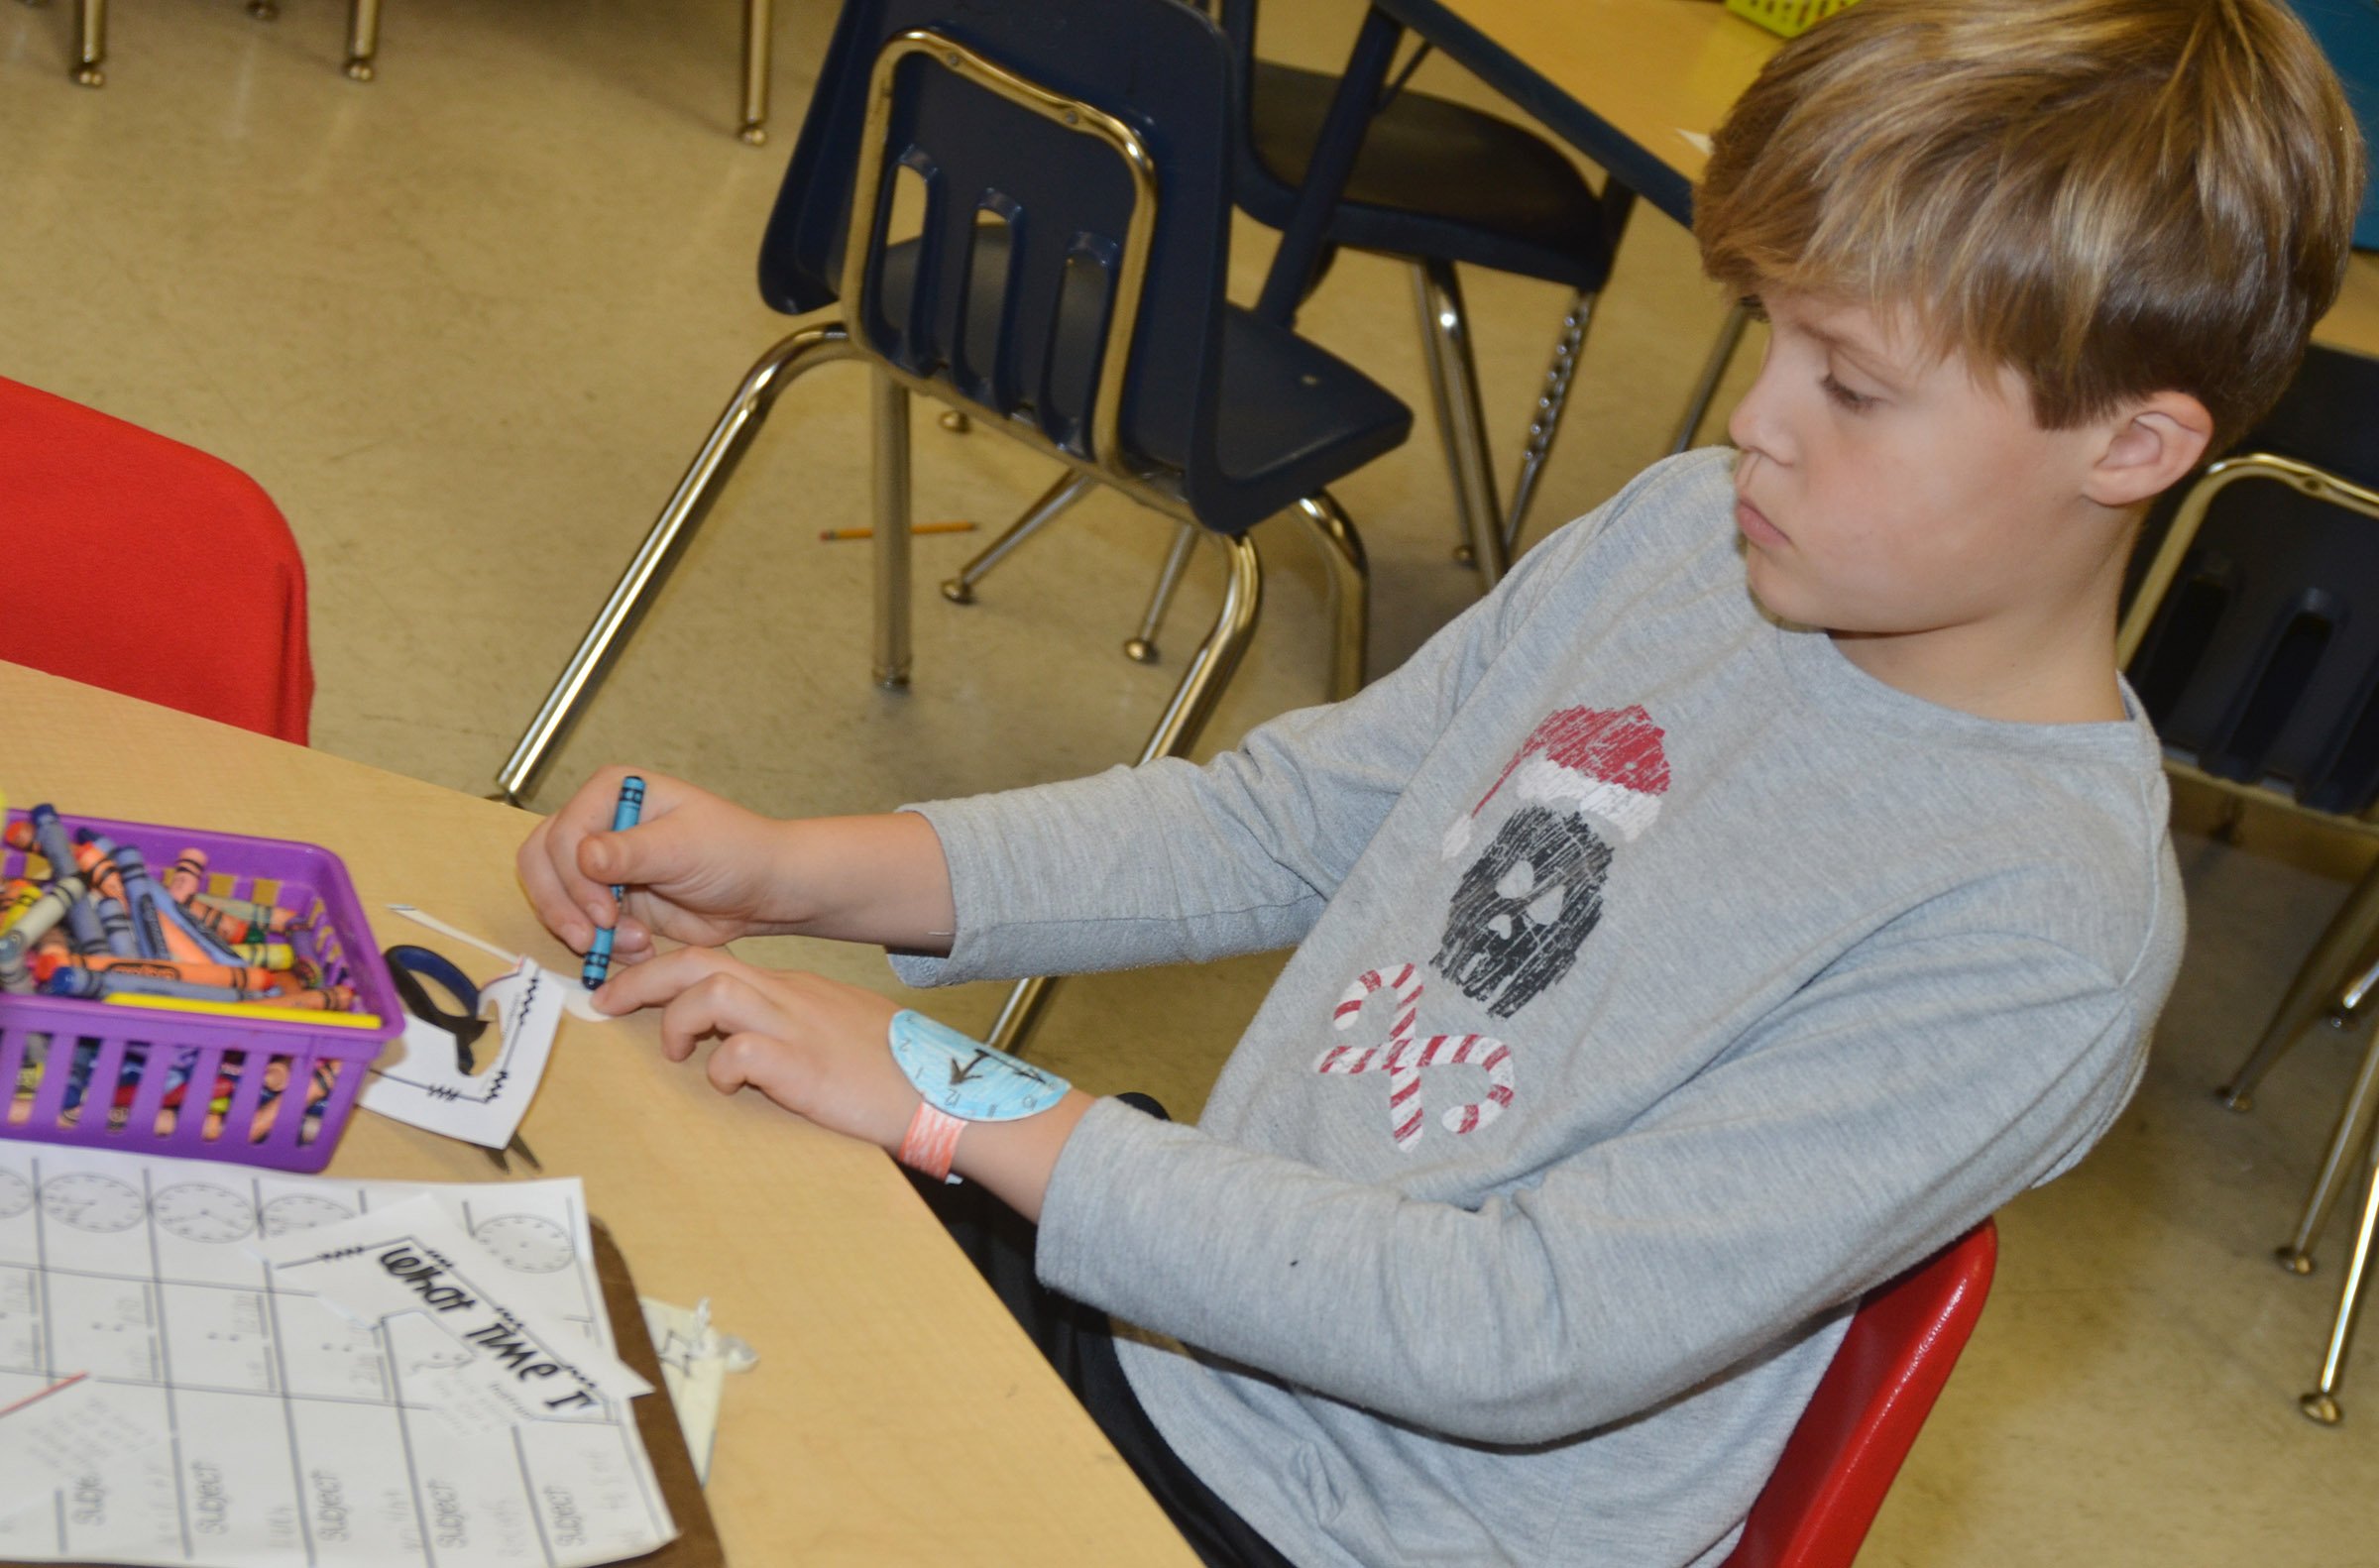 CES second-grader Emerson Gowin wears his watch as he colors.